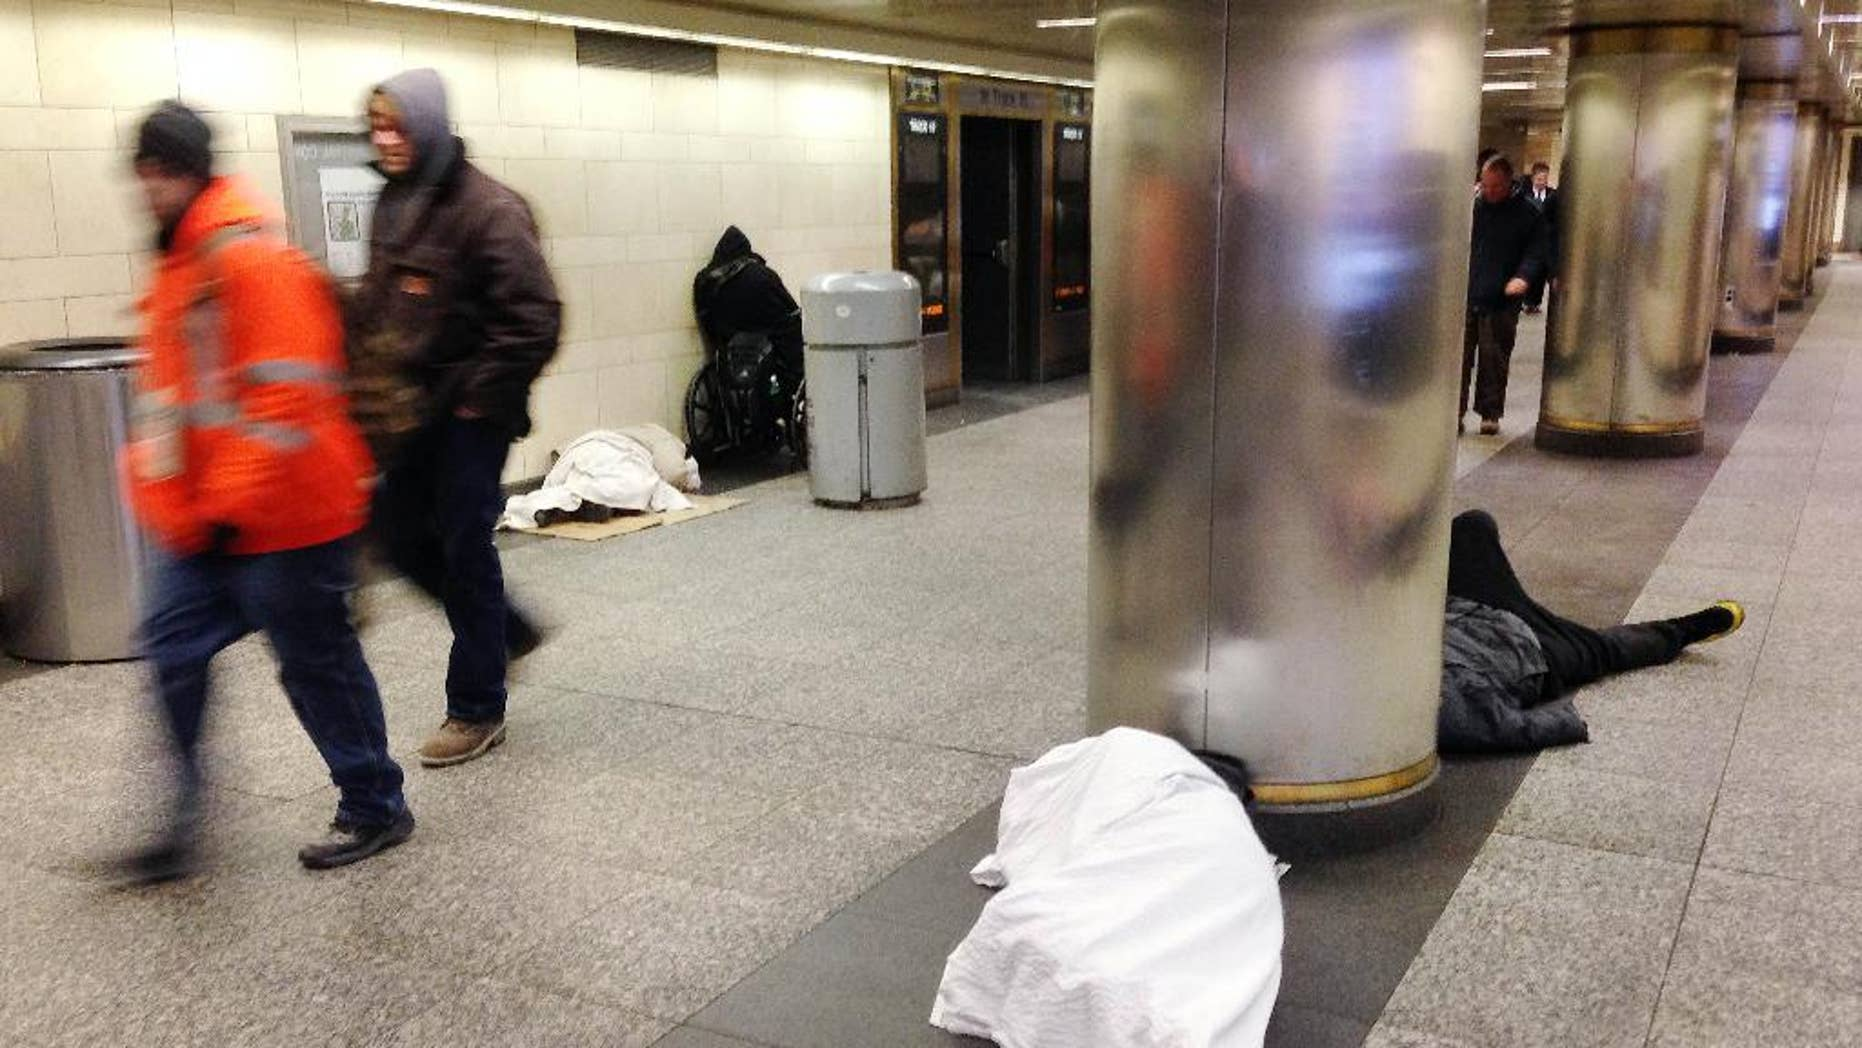 Jan. 8, 2015: Homeless people, seeking shelter from the cold, sleep on the floor of New York's Penn Station as commuters walk past. (AP)